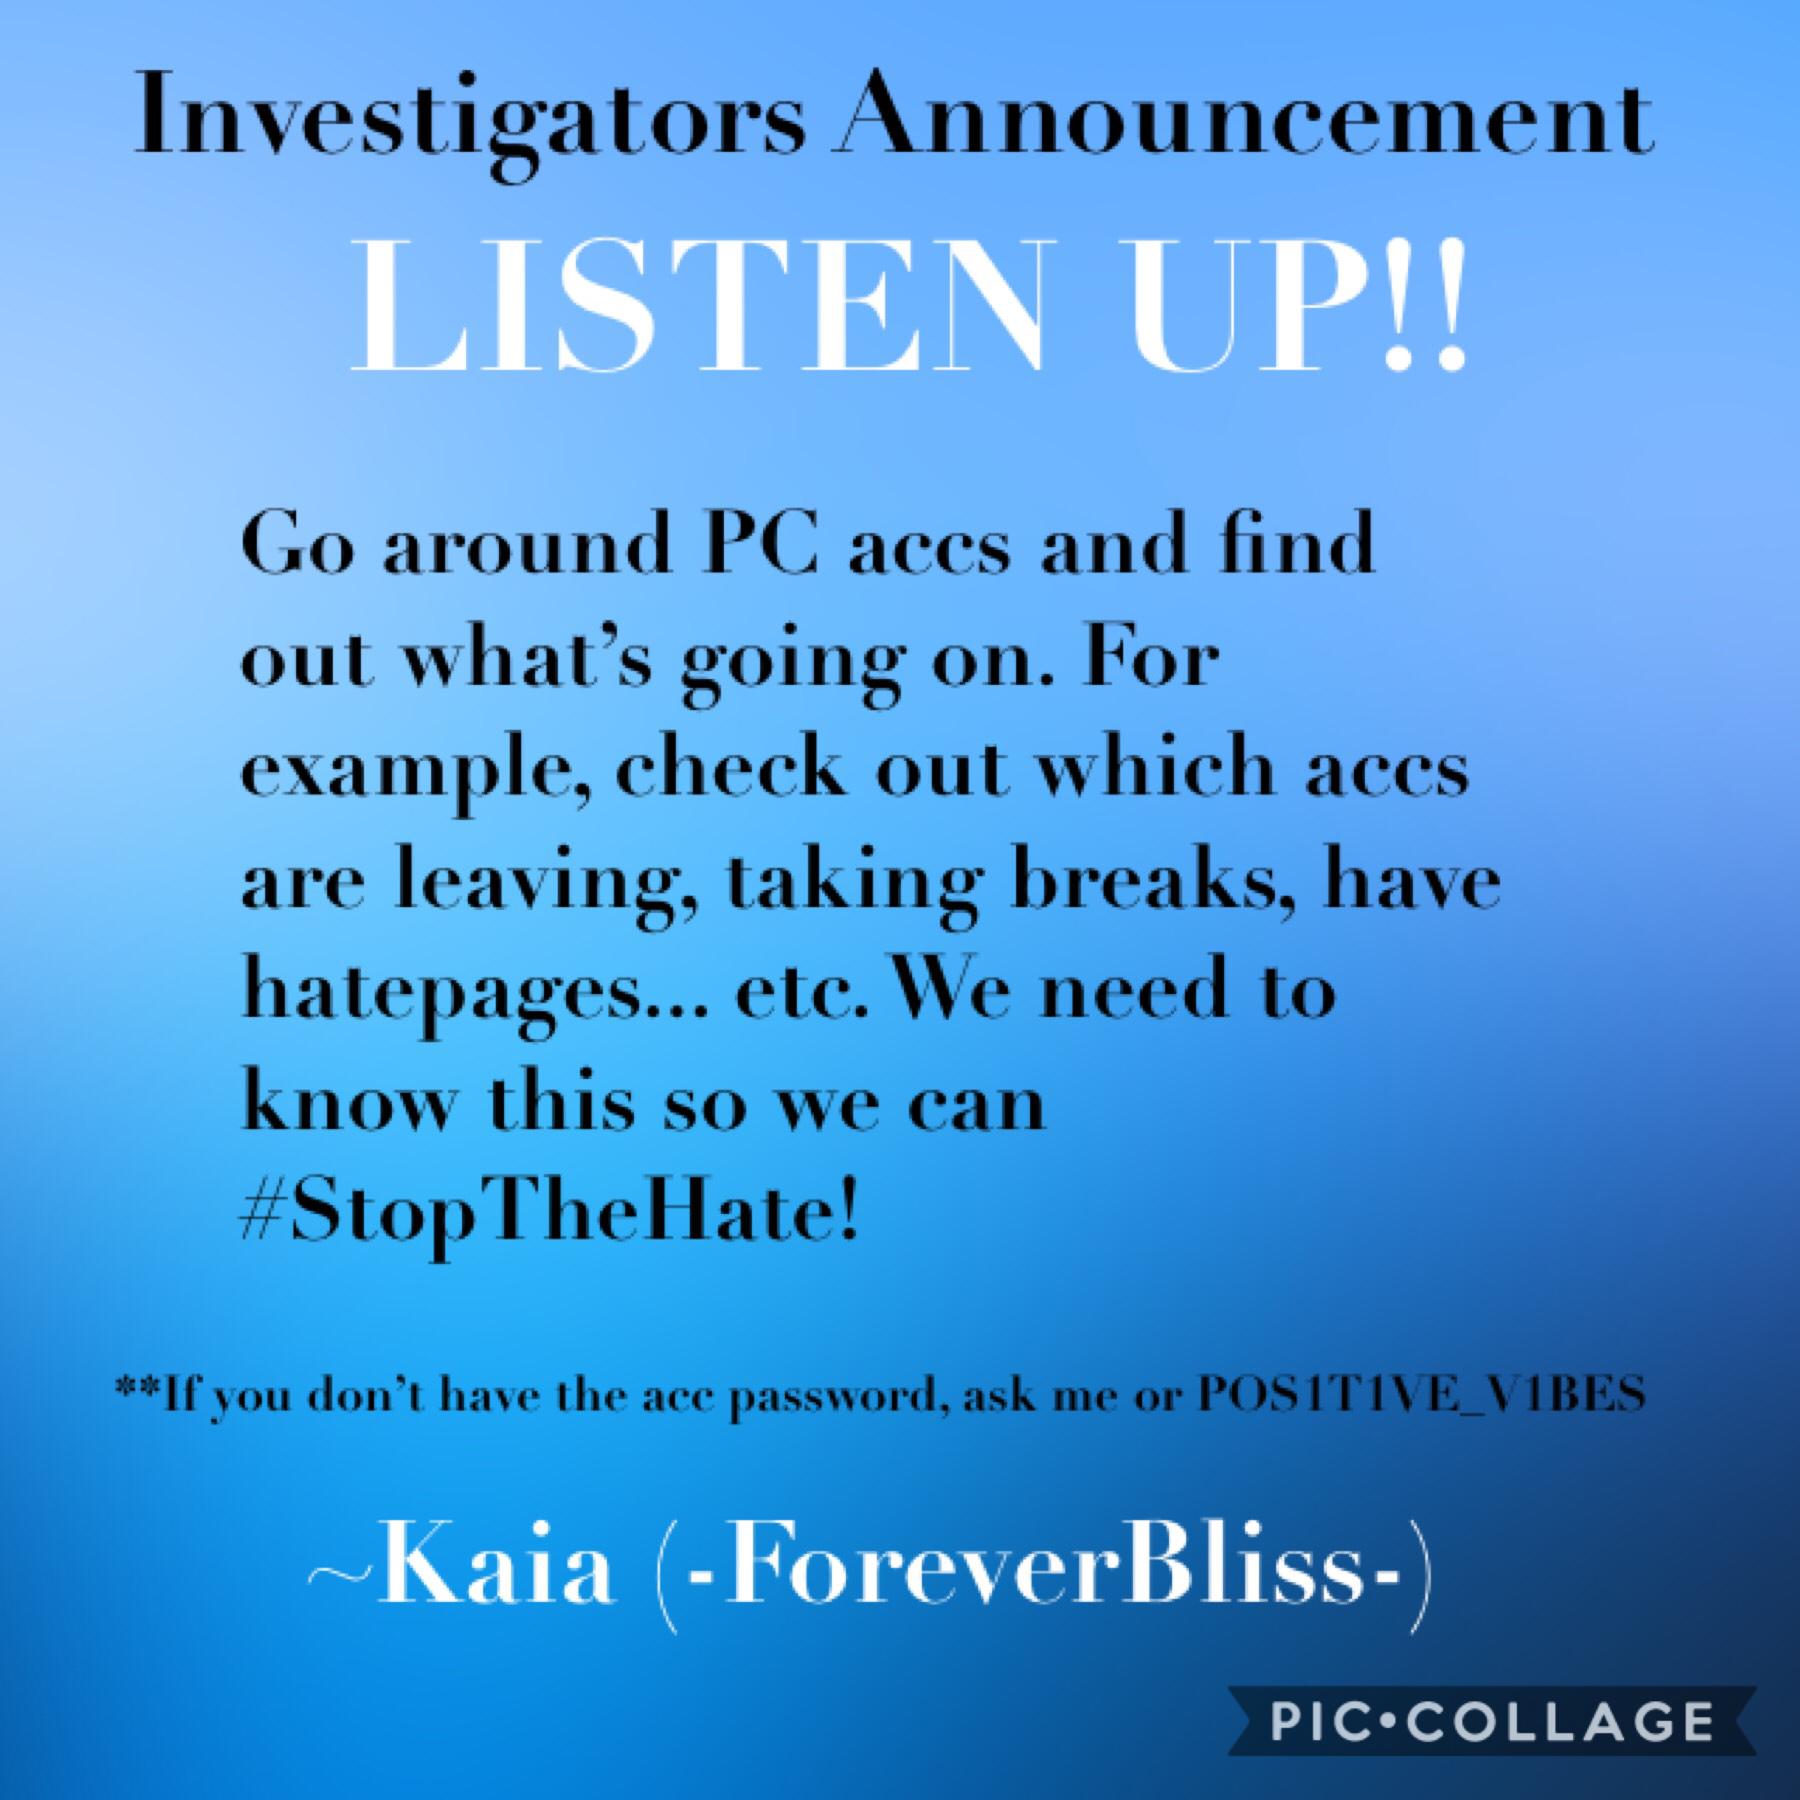 •••tap••• Go find out PC info!! Love, Kaia 😘